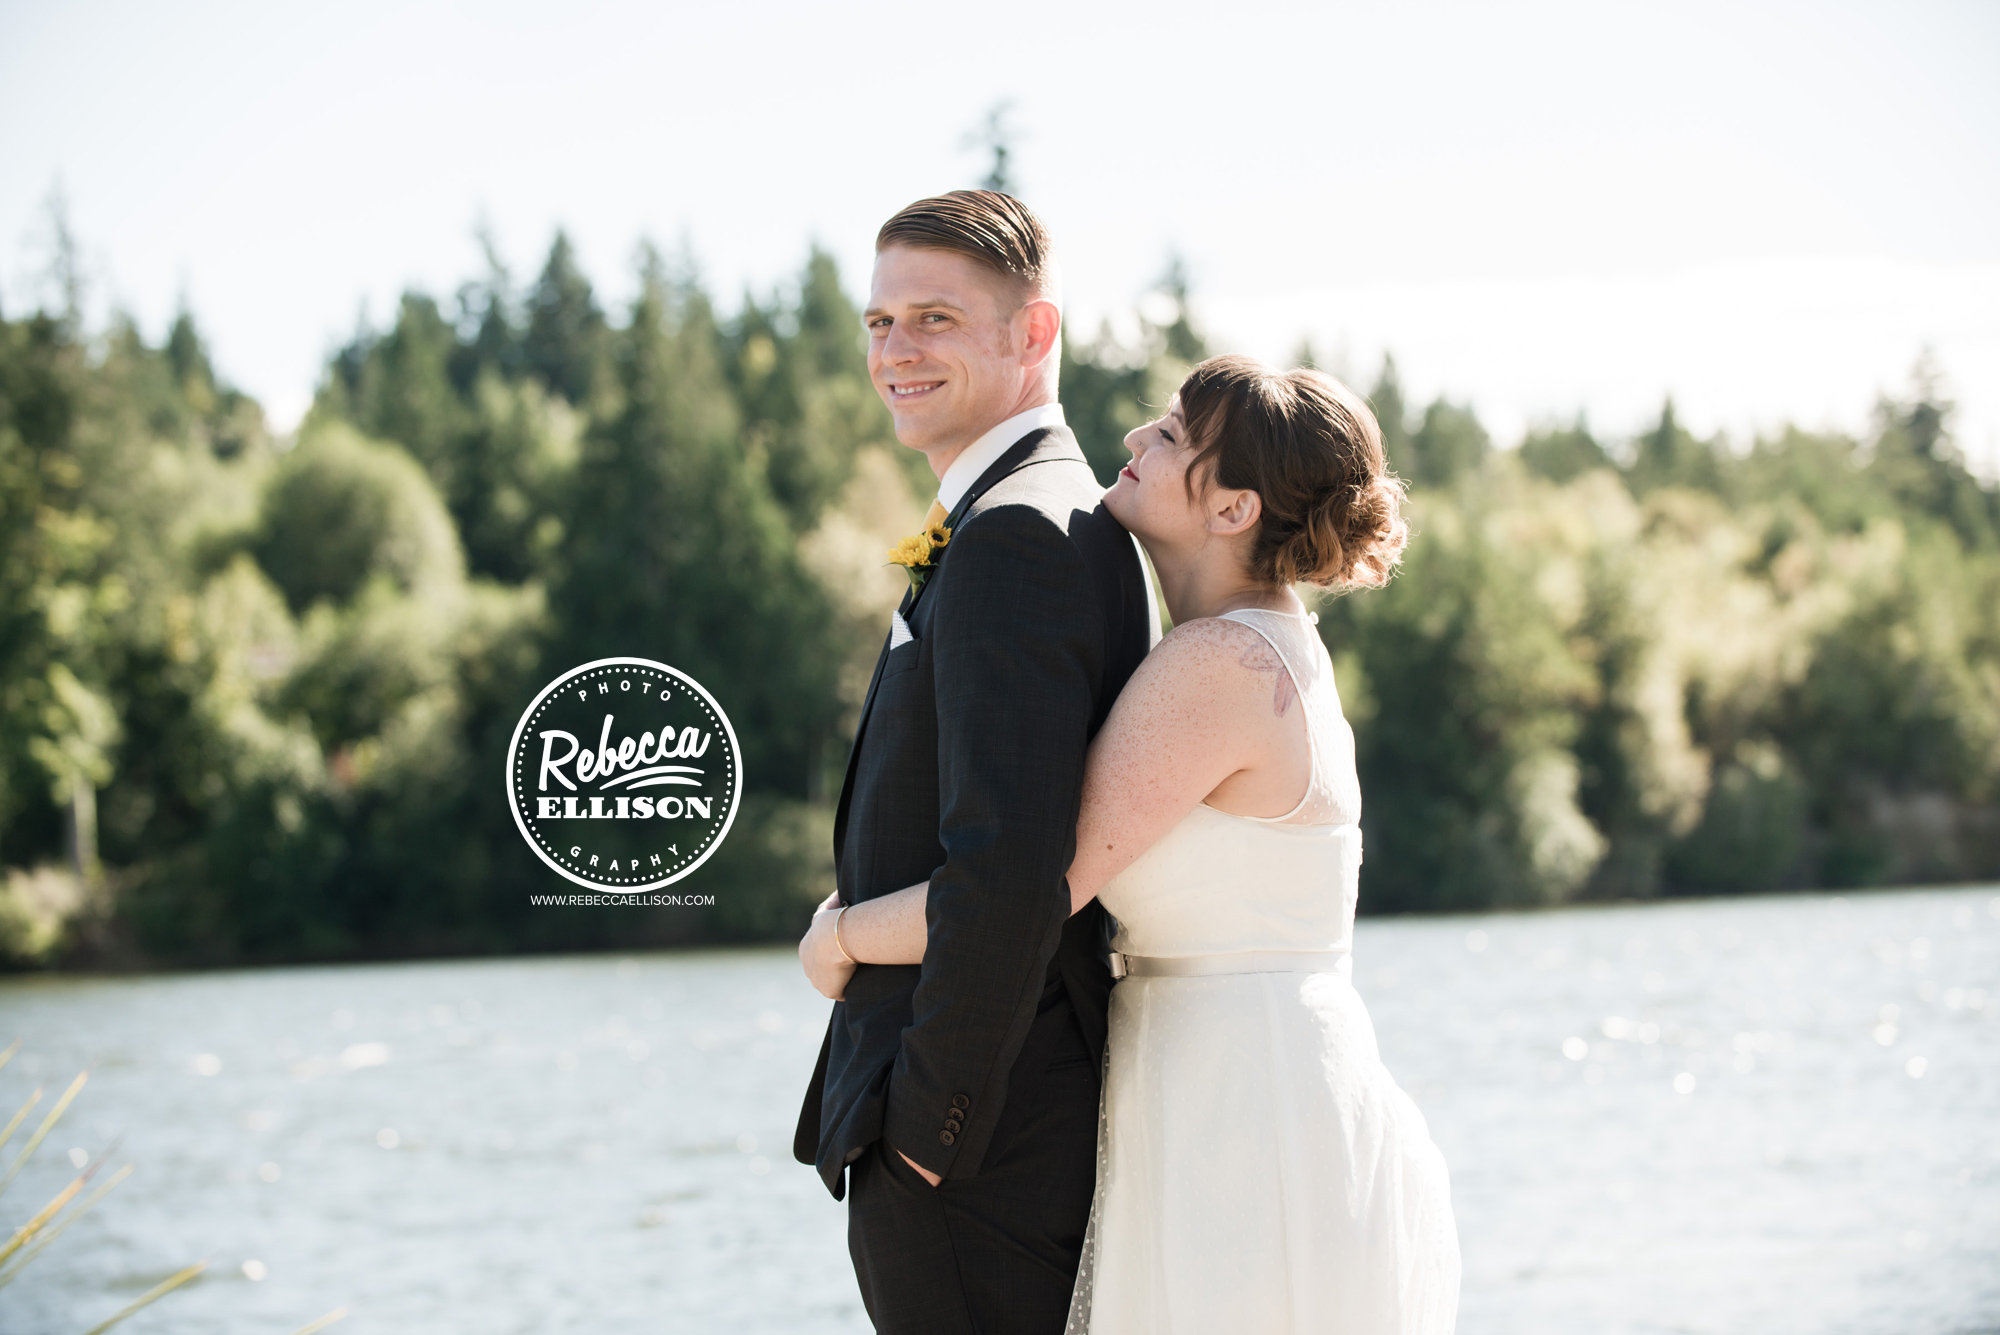 Bride and groom on the beach at a backyard beach house wedding near Seattle photographed by Rebecca Ellison Photography